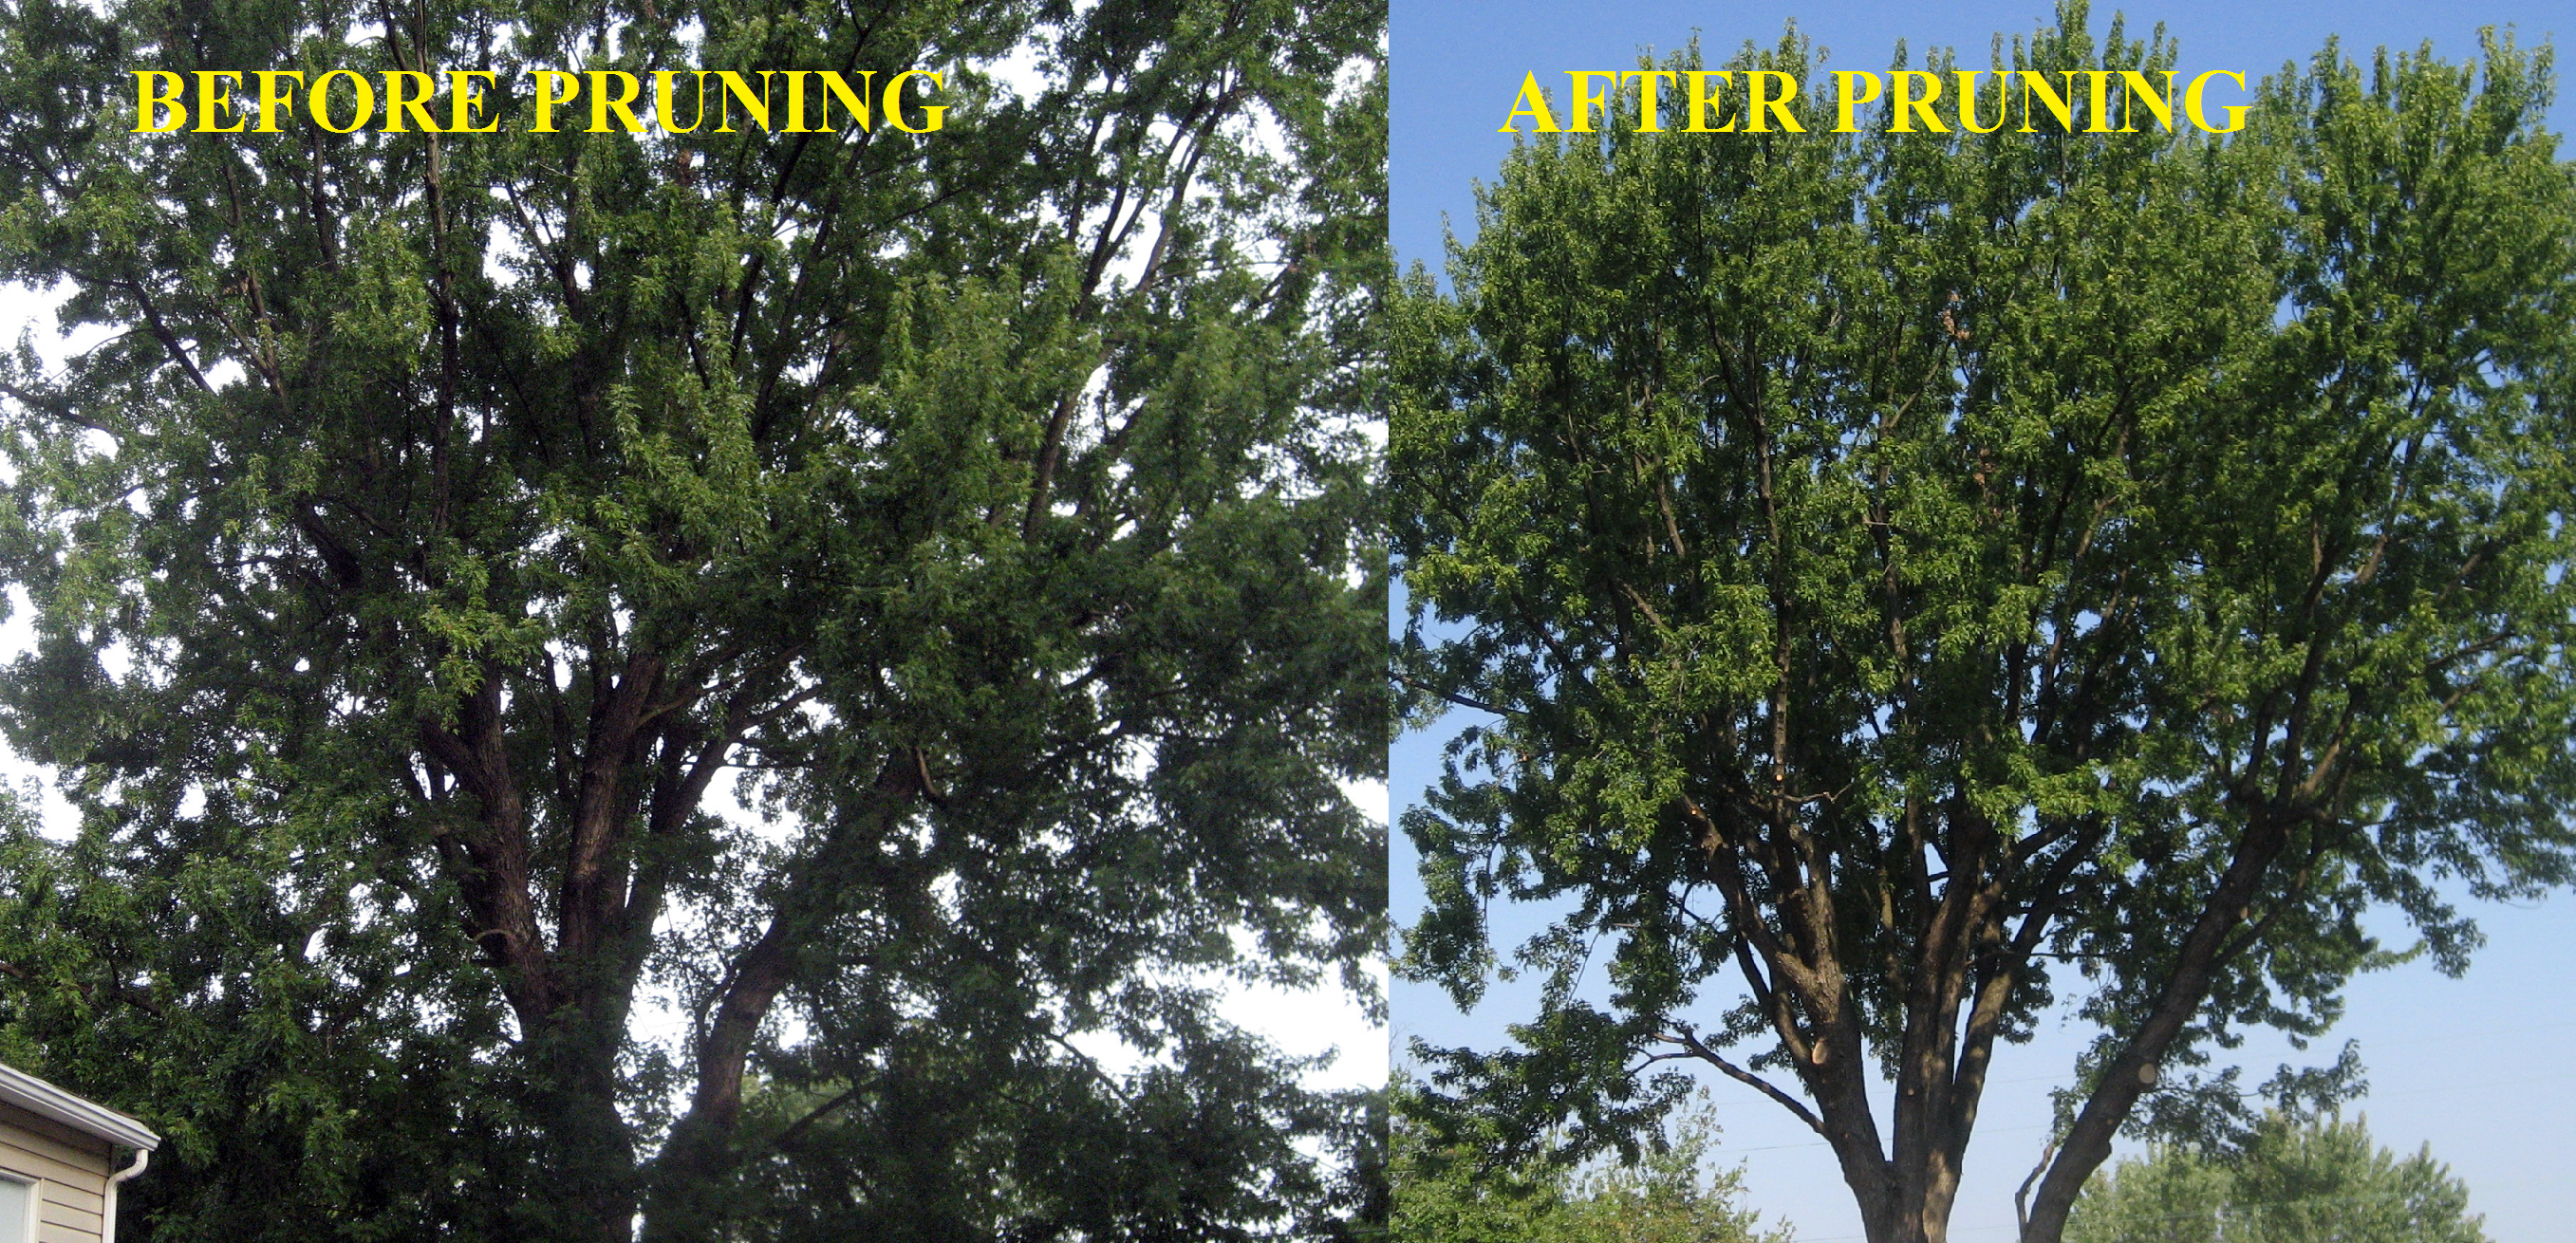 This before and after picture shows how pruning can encourage the healthy growth of your trees.